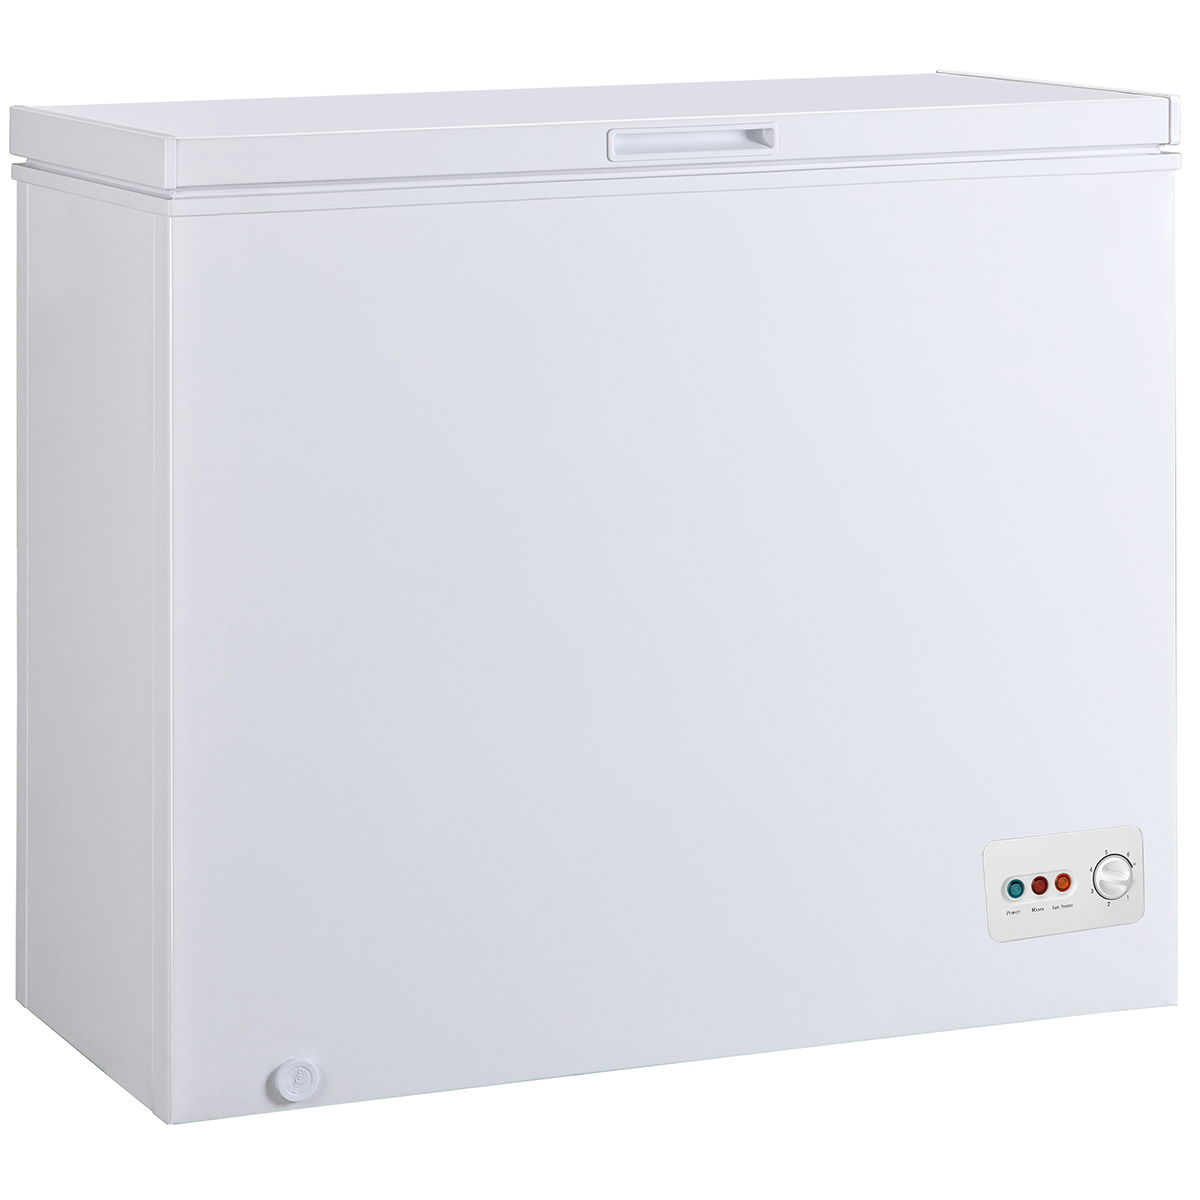 Midea Chest Freezer MCH198W